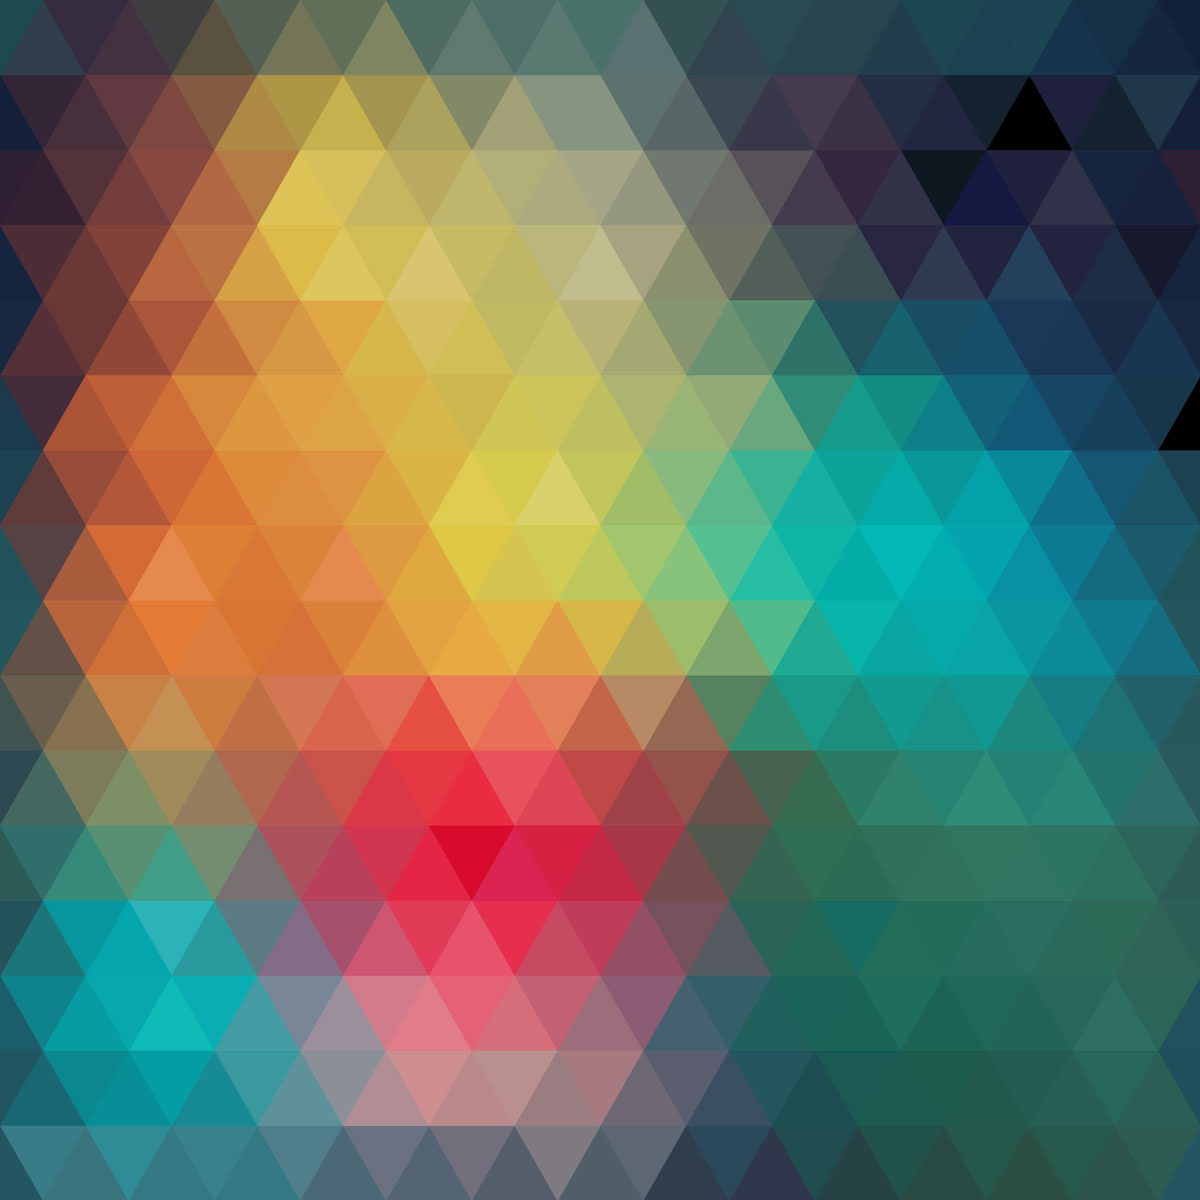 16 Geometric Vector Background Images